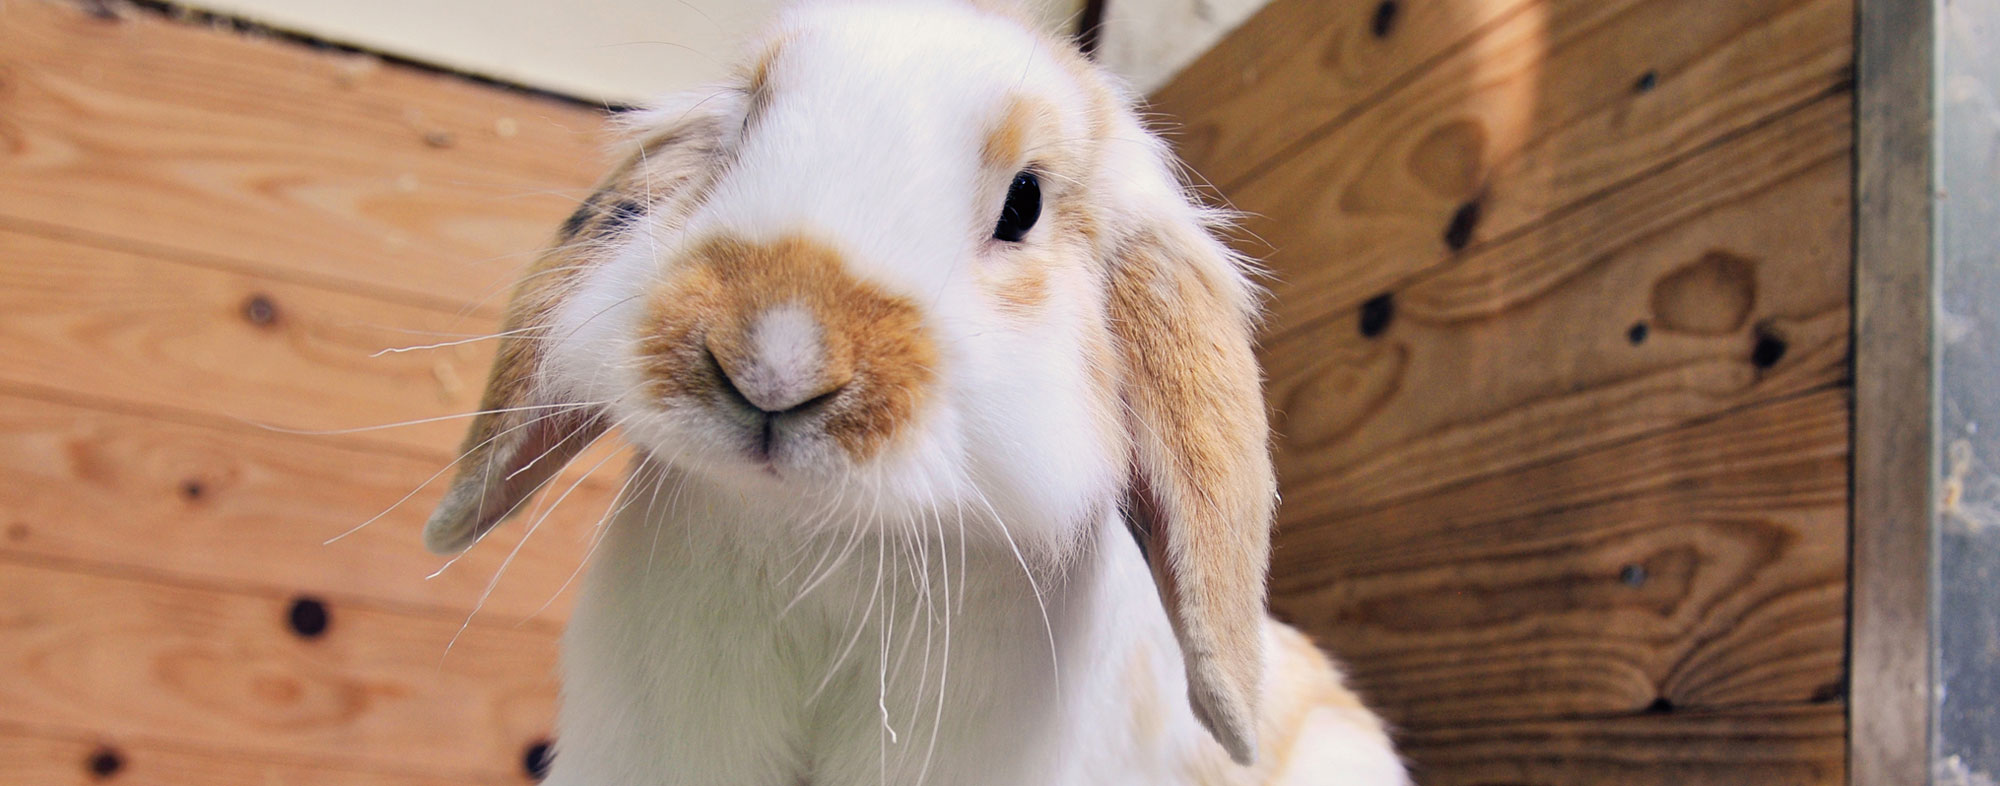 A pet rabbit inside a cage home designed for small animals